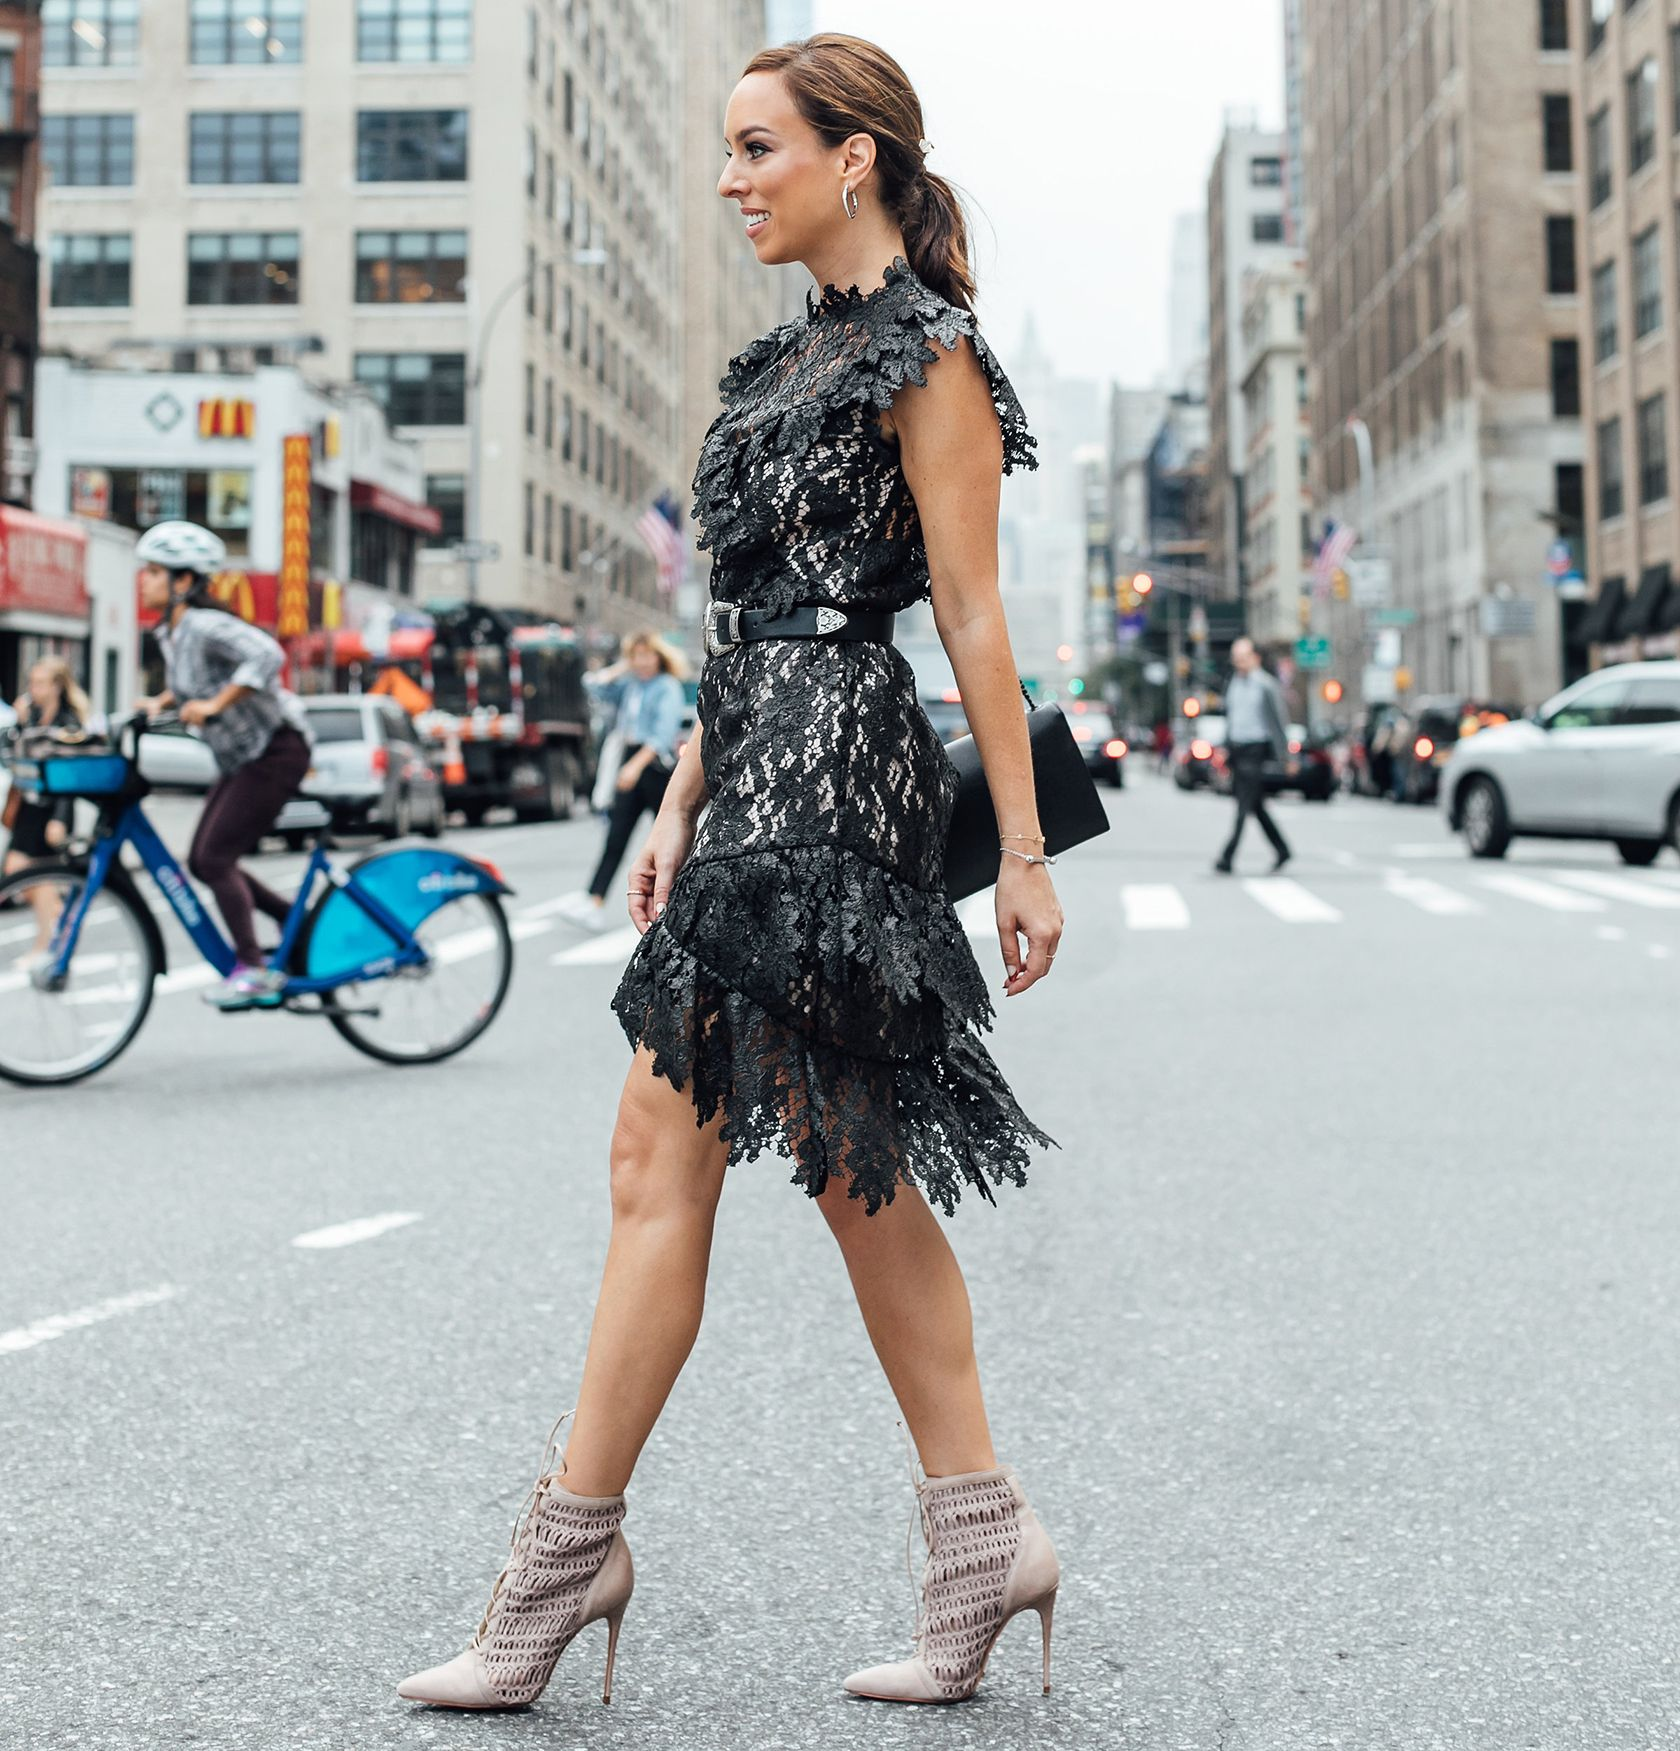 f311db4e1499 Sydne Style wears black lace dress for fall outfit ideas  black  lace   dresses  booties  sydnesummer